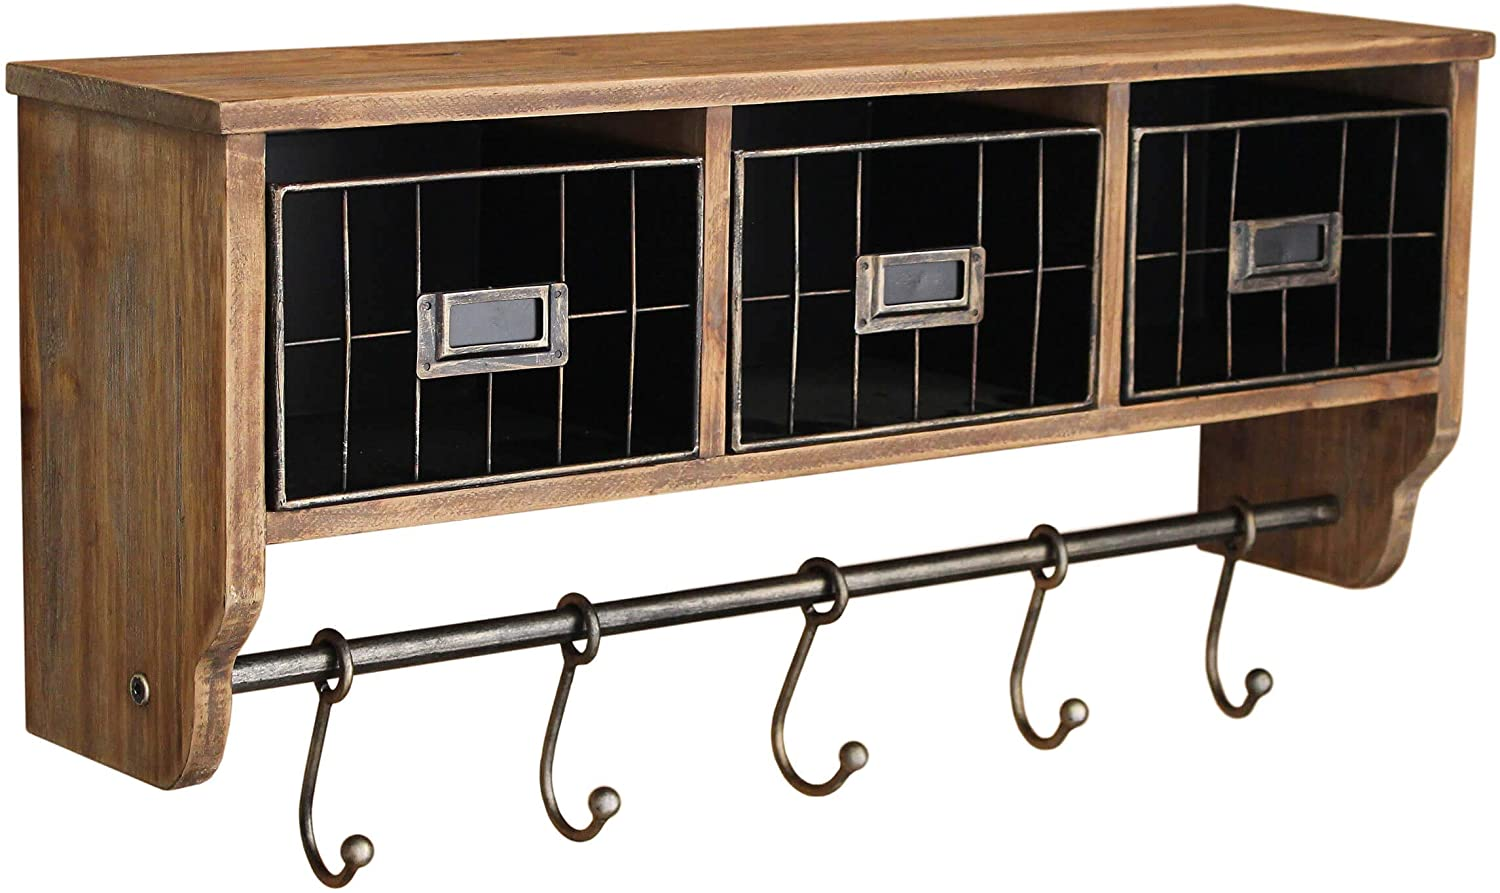 VASAGLE Vintage Coat Rack Shelf Wall Mounted Coat Hooks Shelf with Hanging Rail 5 Metal Removable Hooks and Storage Shelf for Entryway Hallway Bedroom Bathroom Living Room ULCR13AX